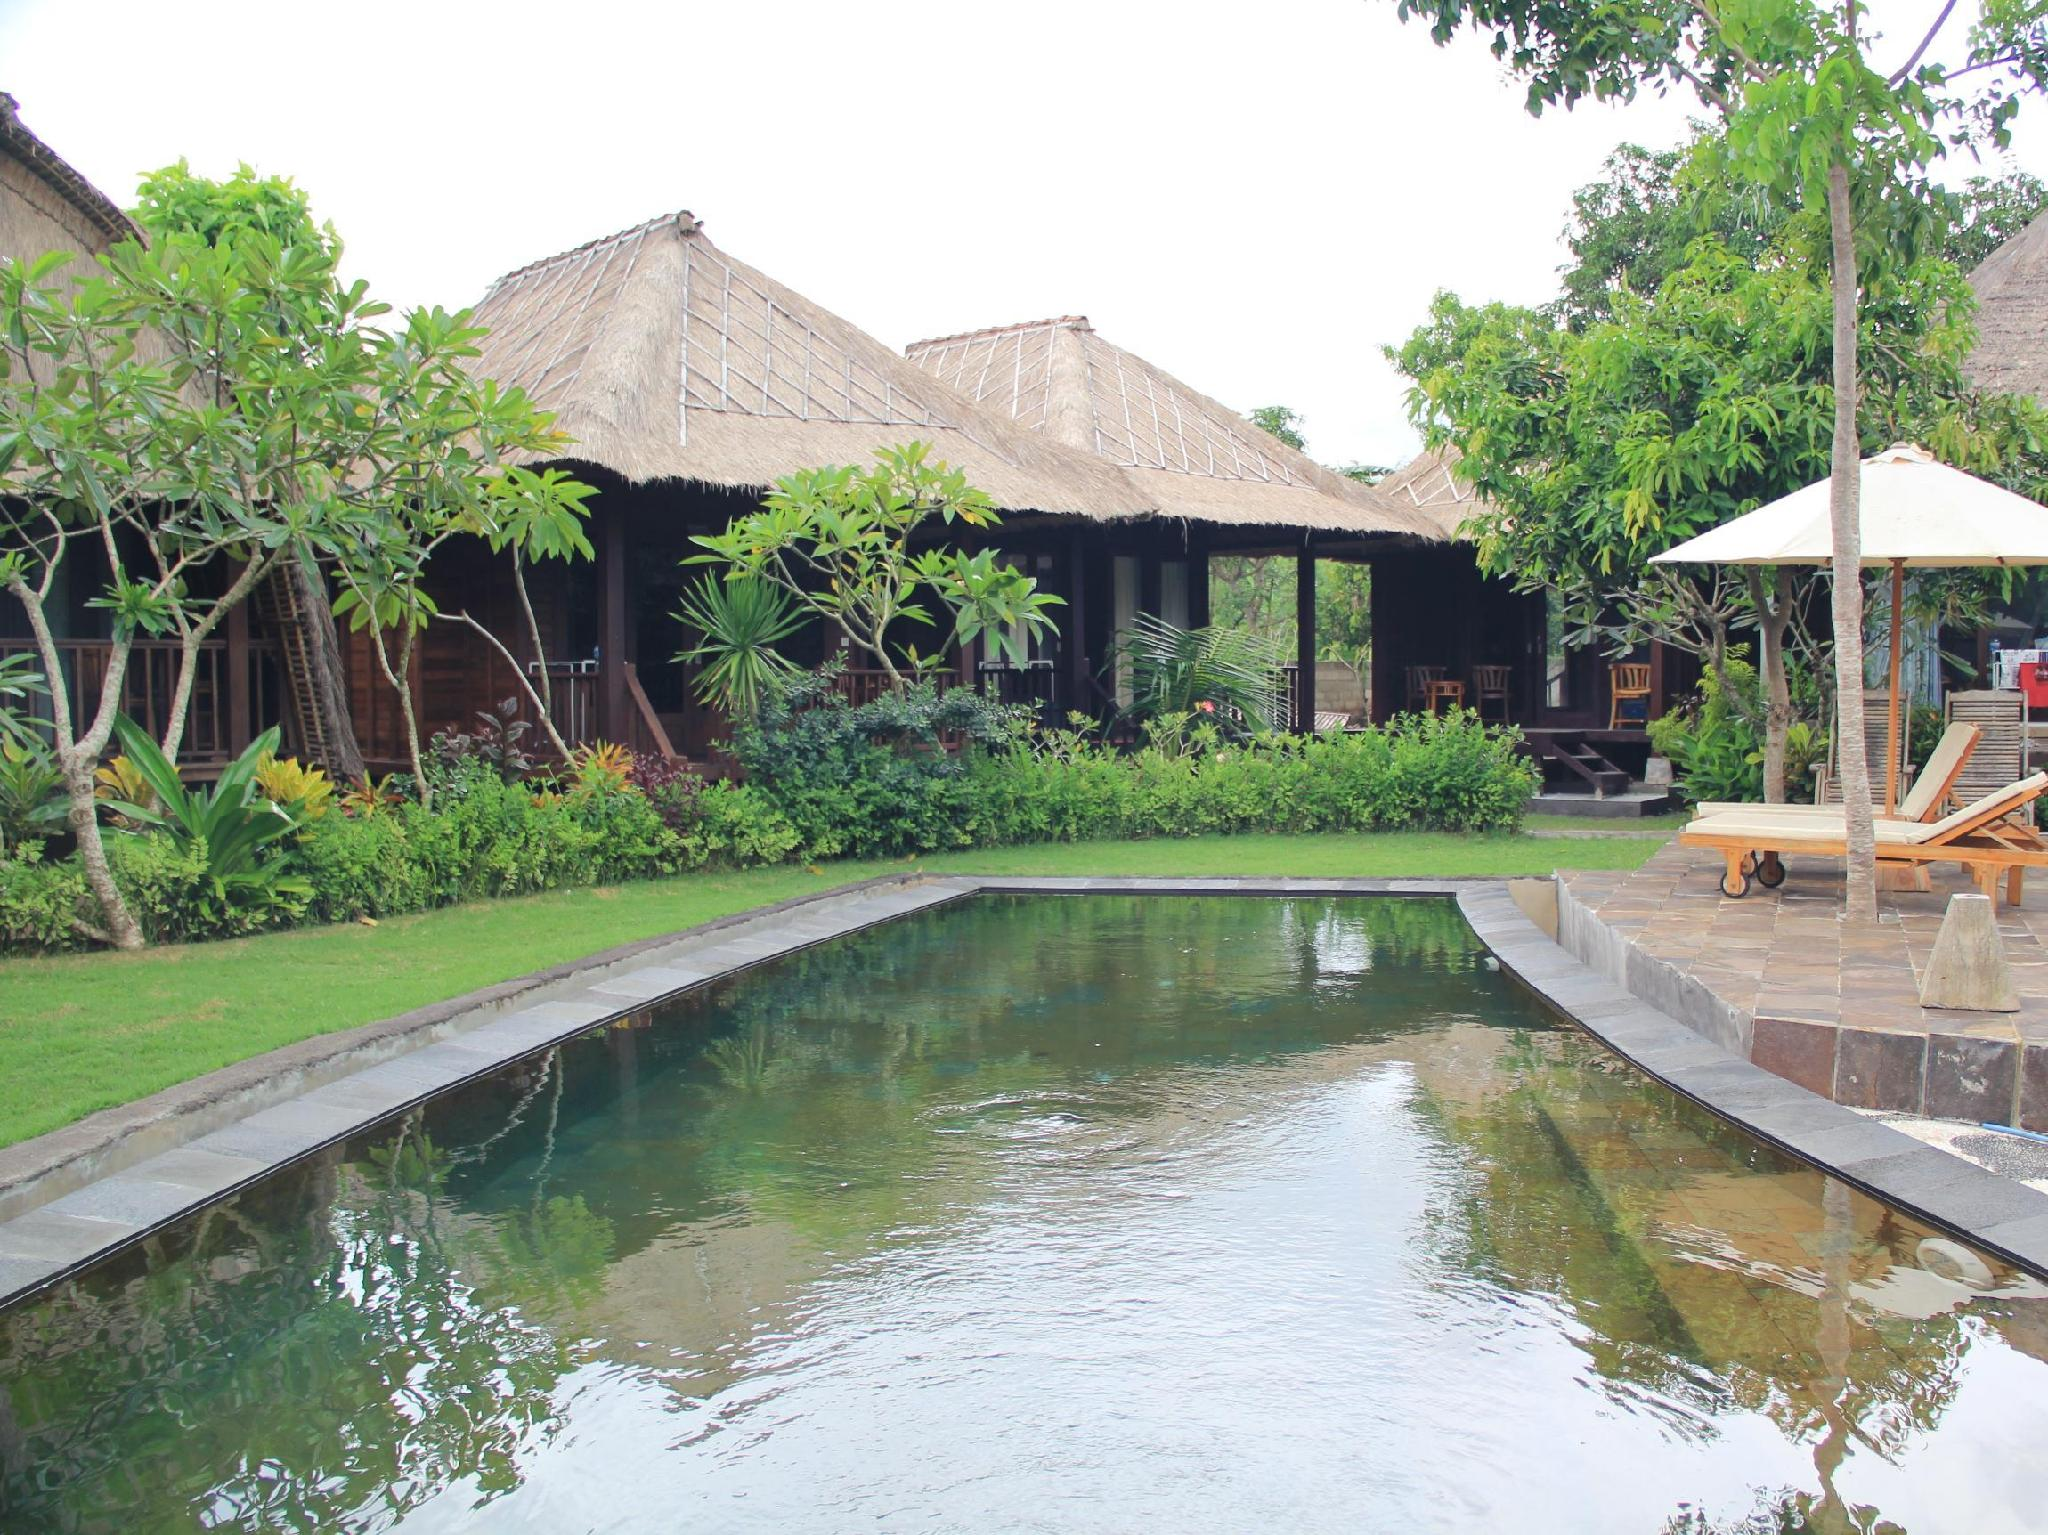 Rigils Lembongan Bungalows & Spa